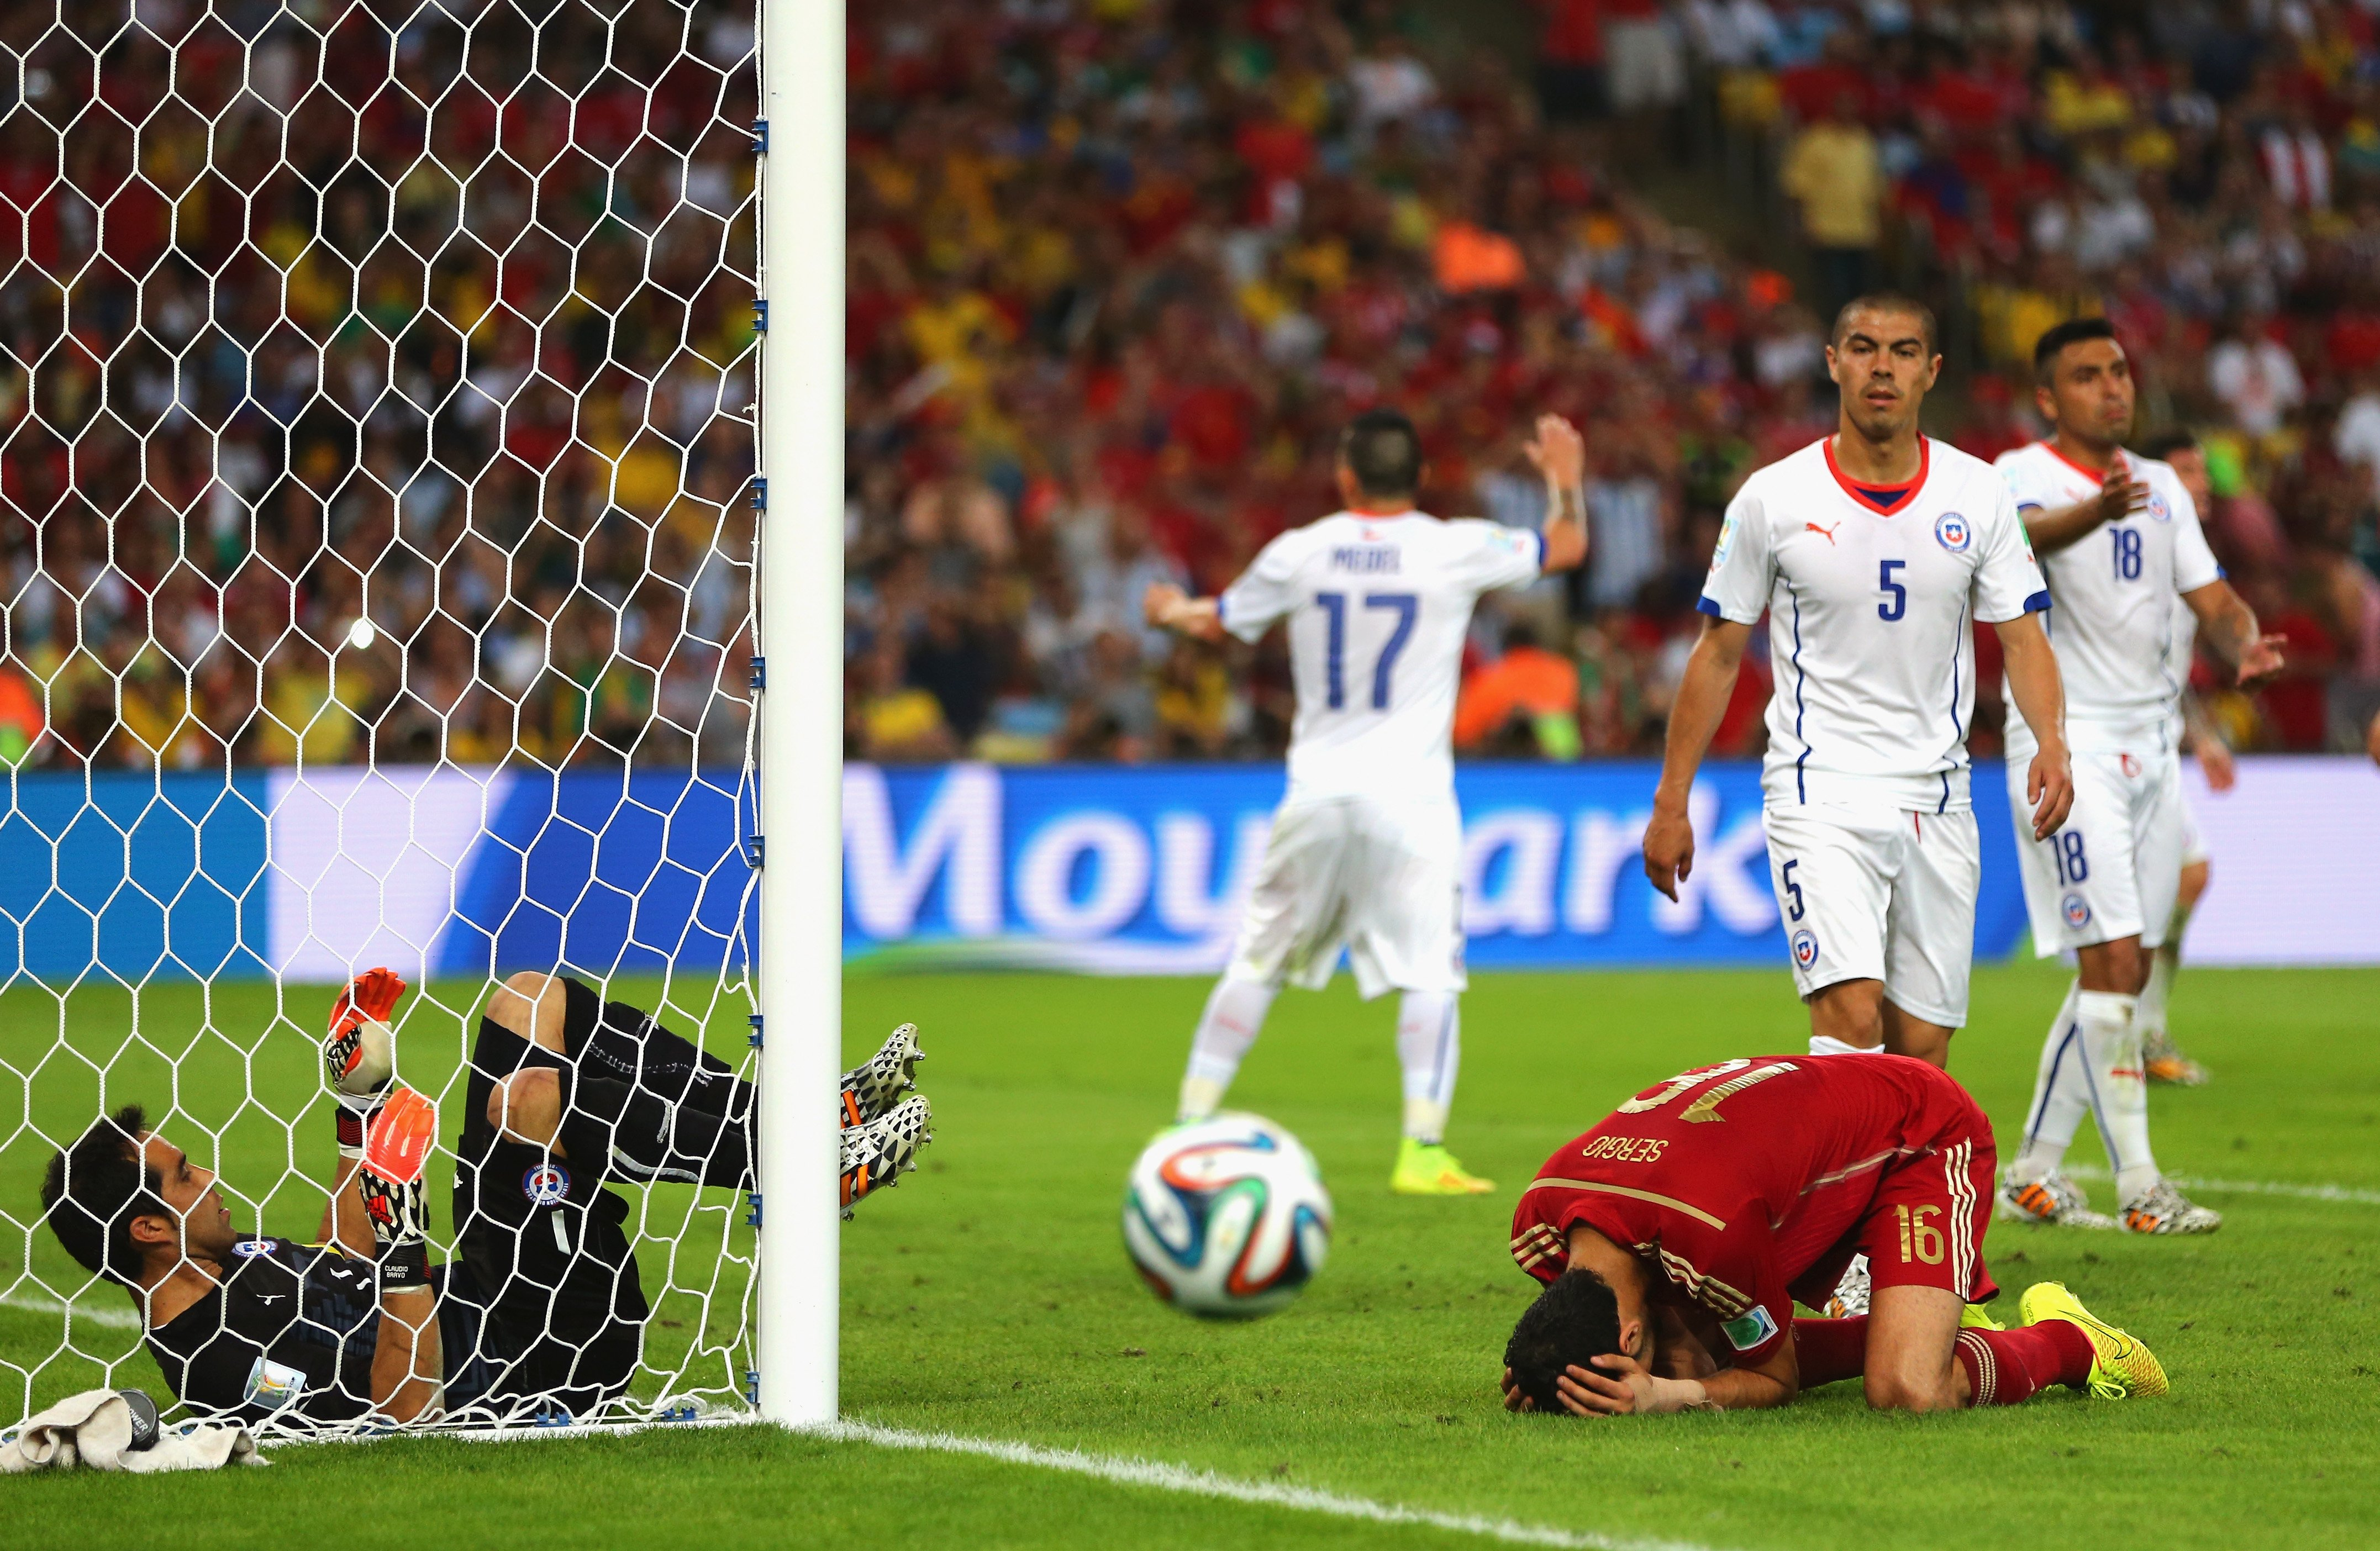 Sergio Busquets of Spain reacts after a missed chance as goalkeeper Claudio Bravo of Chile looks on during the 2014 FIFA World Cup Brazil Group B match between Spain and Chile at Maracana on June 18, 2014 in Rio de Janeiro.